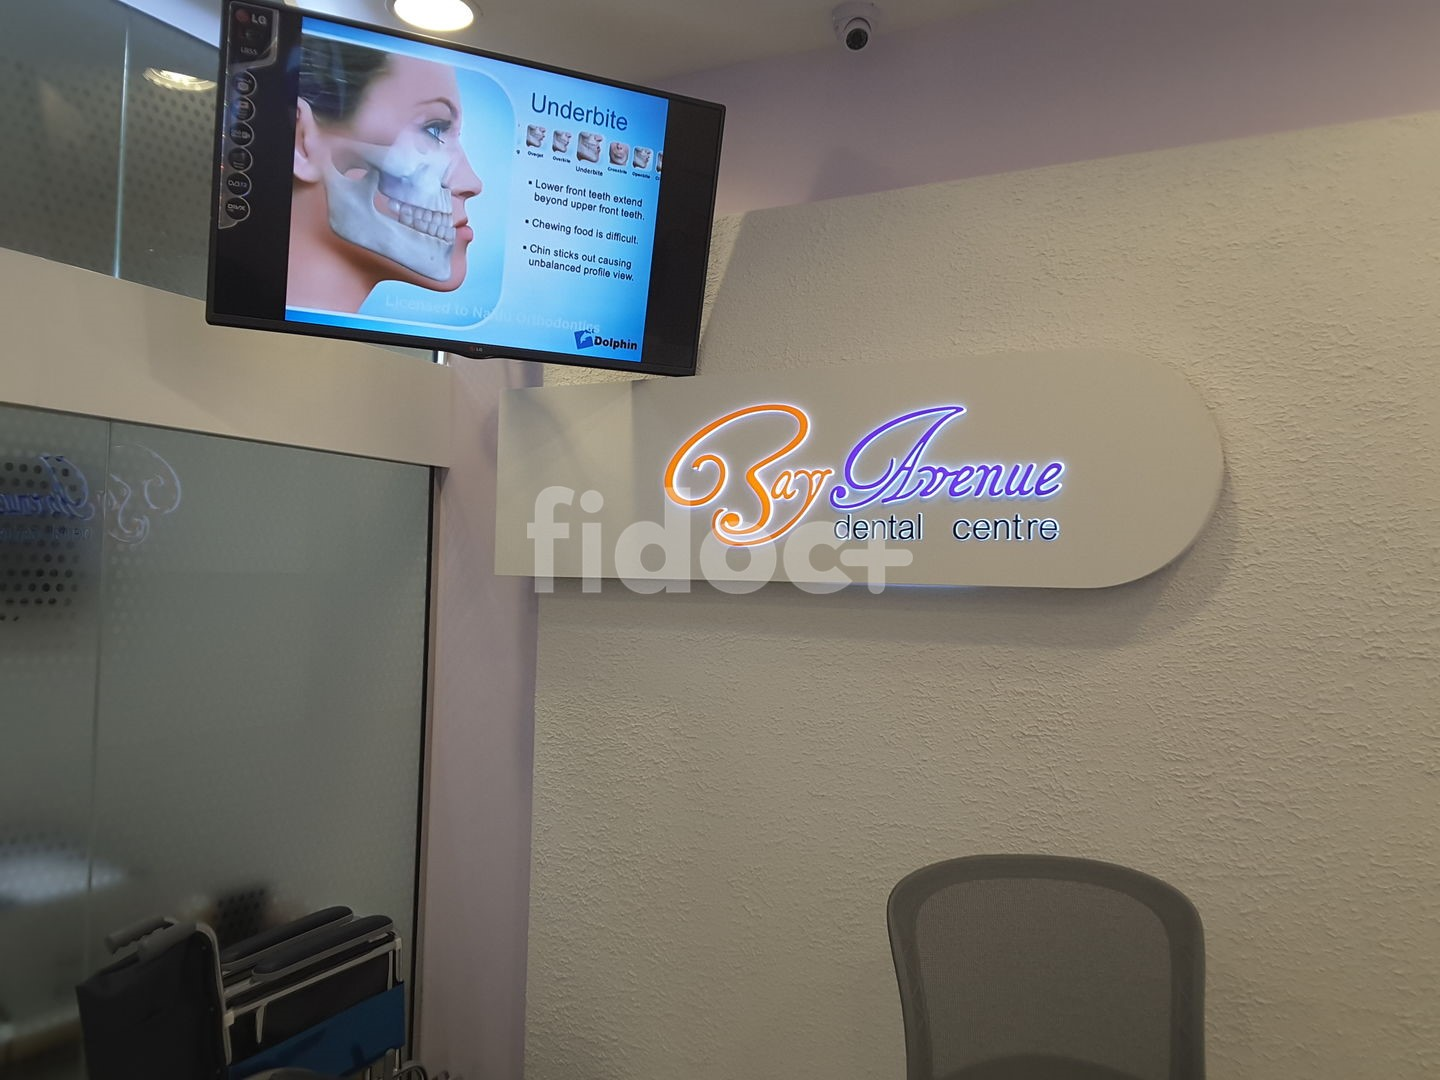 Bay Avenue Dental Centre, Dubai